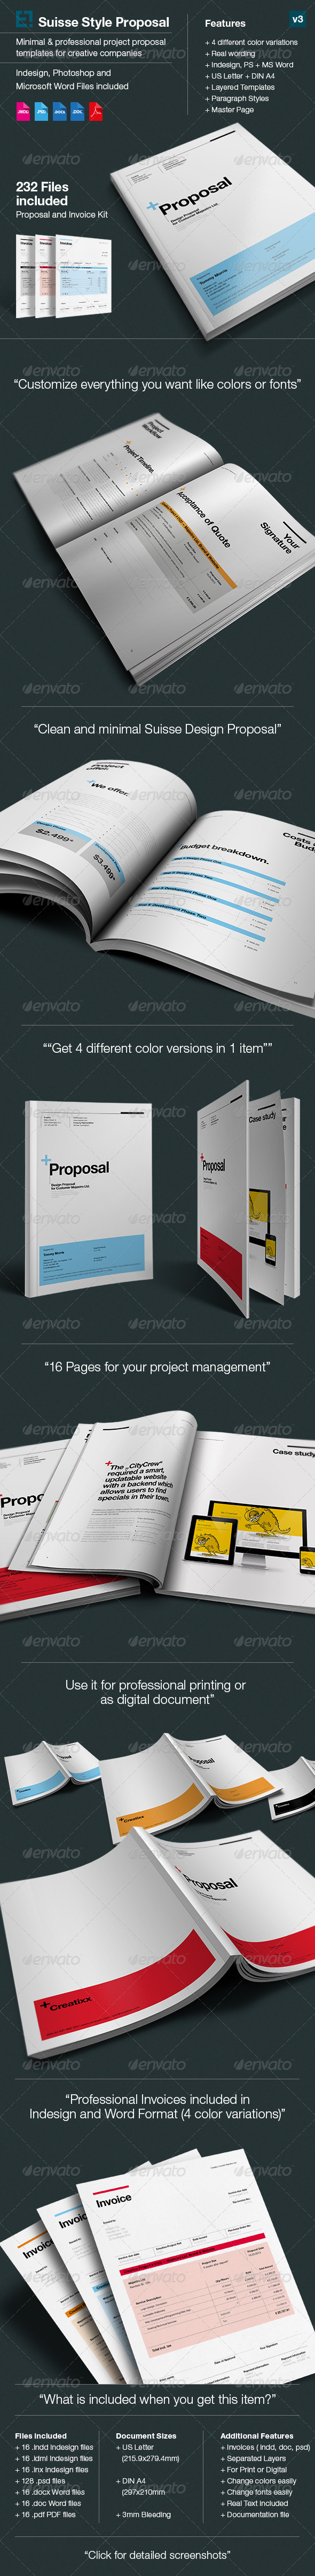 Proposal Template Suisse Design